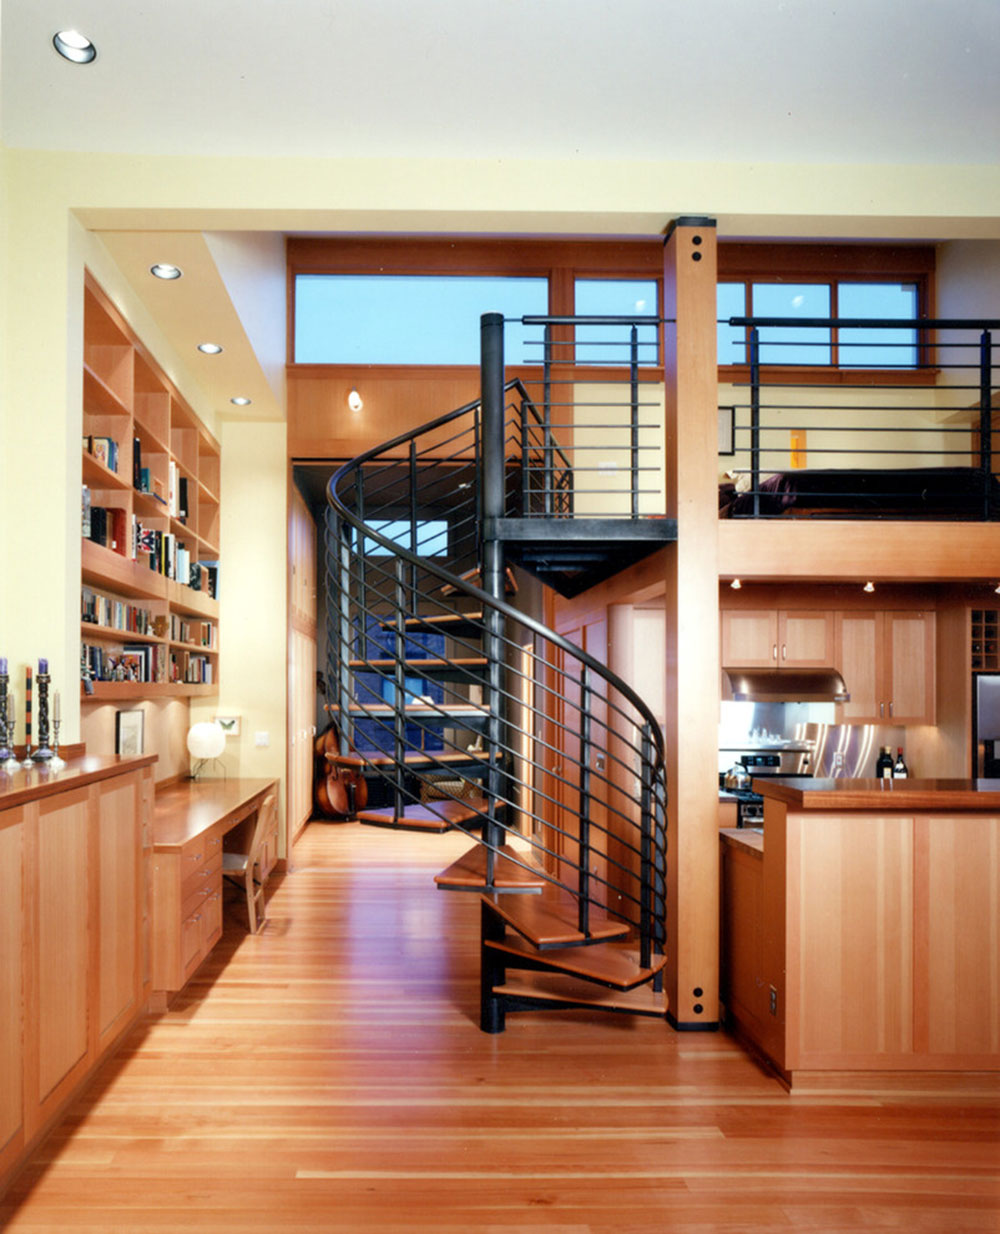 Exquisite Staircase Design full size of houses exquisite staircase design on hallway near wooden steps inside floor floor Modern And Exquisite Floating Staircase17 Modern And Exquisite Floating Staircase Designs